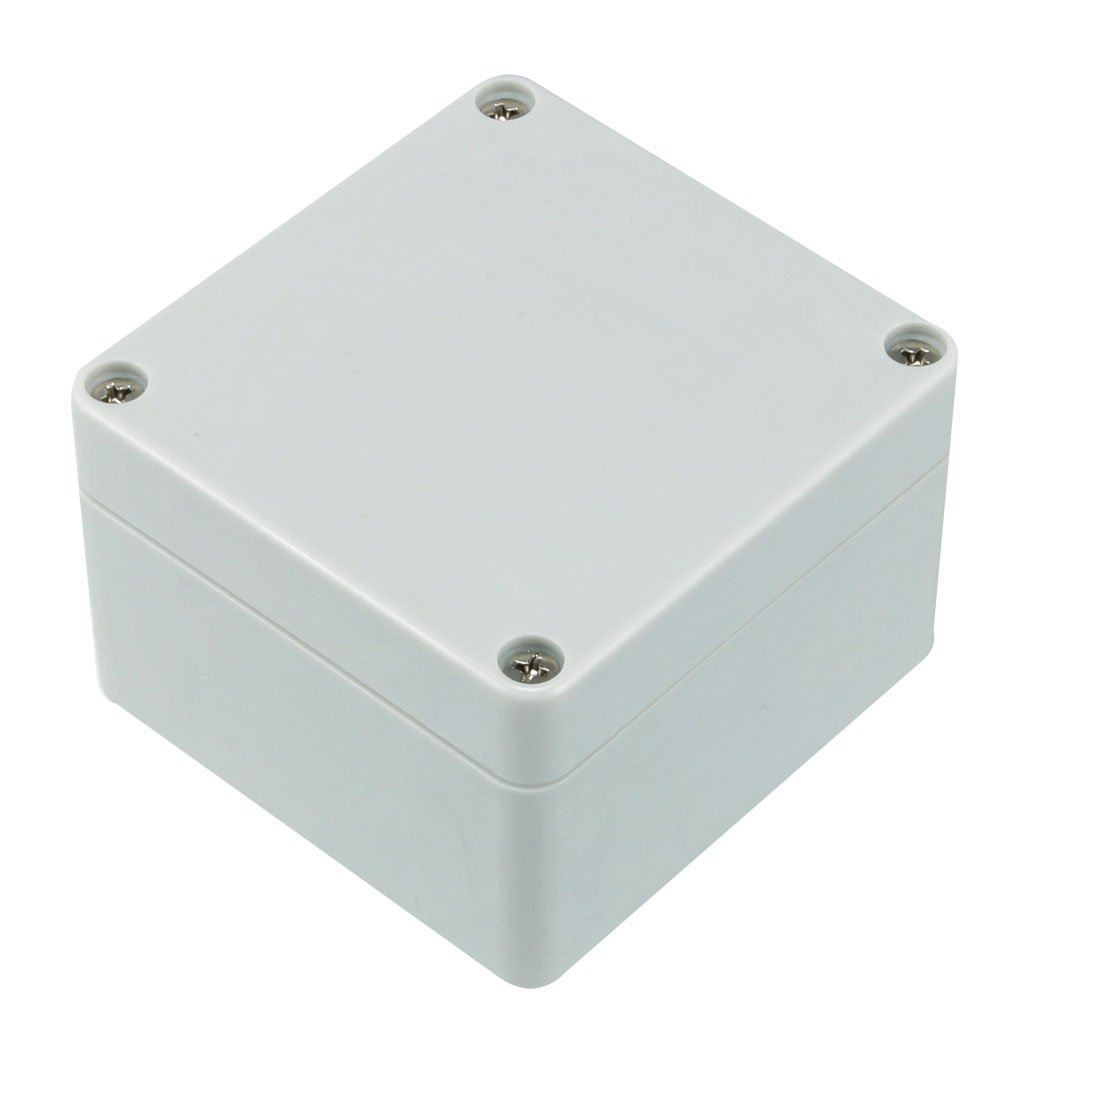 sourcingmap 83 x 81 x 56mm Electronic Plastic DIY Junction Box Enclosure Case Gray a18032100ux0346